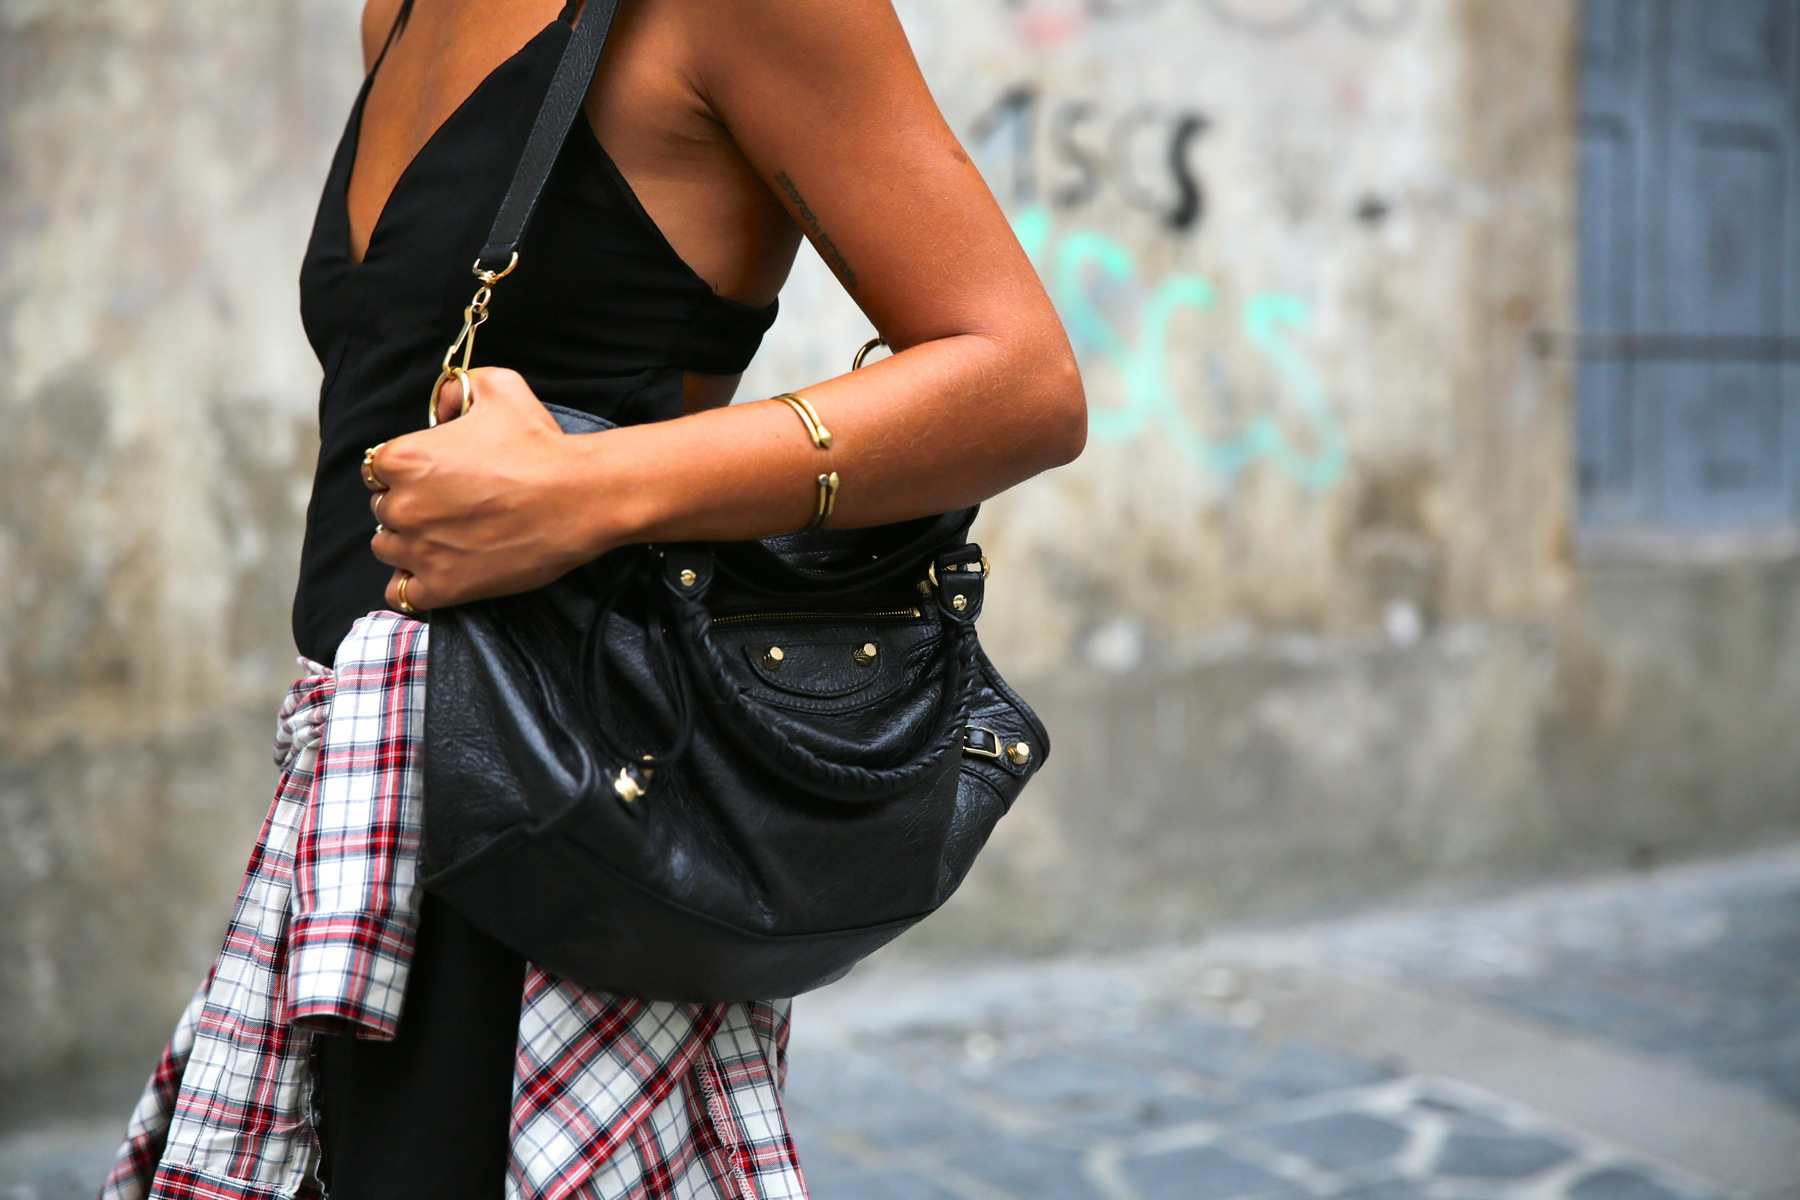 trendy_taste-look-outfit-street_style-ootd-blog-blogger-fashion_spain-moda_españa-camisa_cuadros-plaid_shirt-balenciaga-city_bag-stan_smith-adidas-mono_negro-black_jumpsuit-2